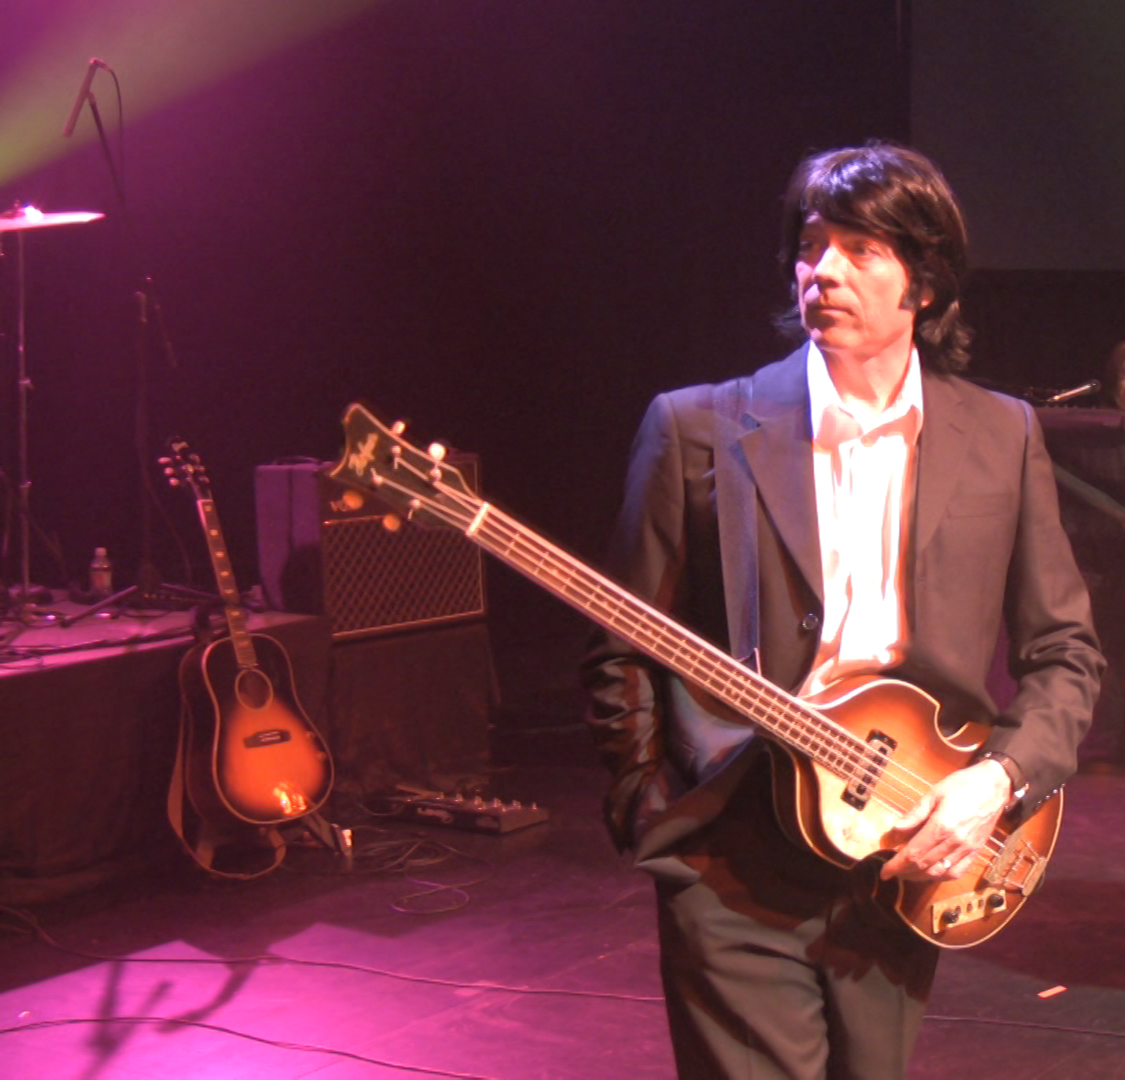 Tim Mahoney as Paul McCartney